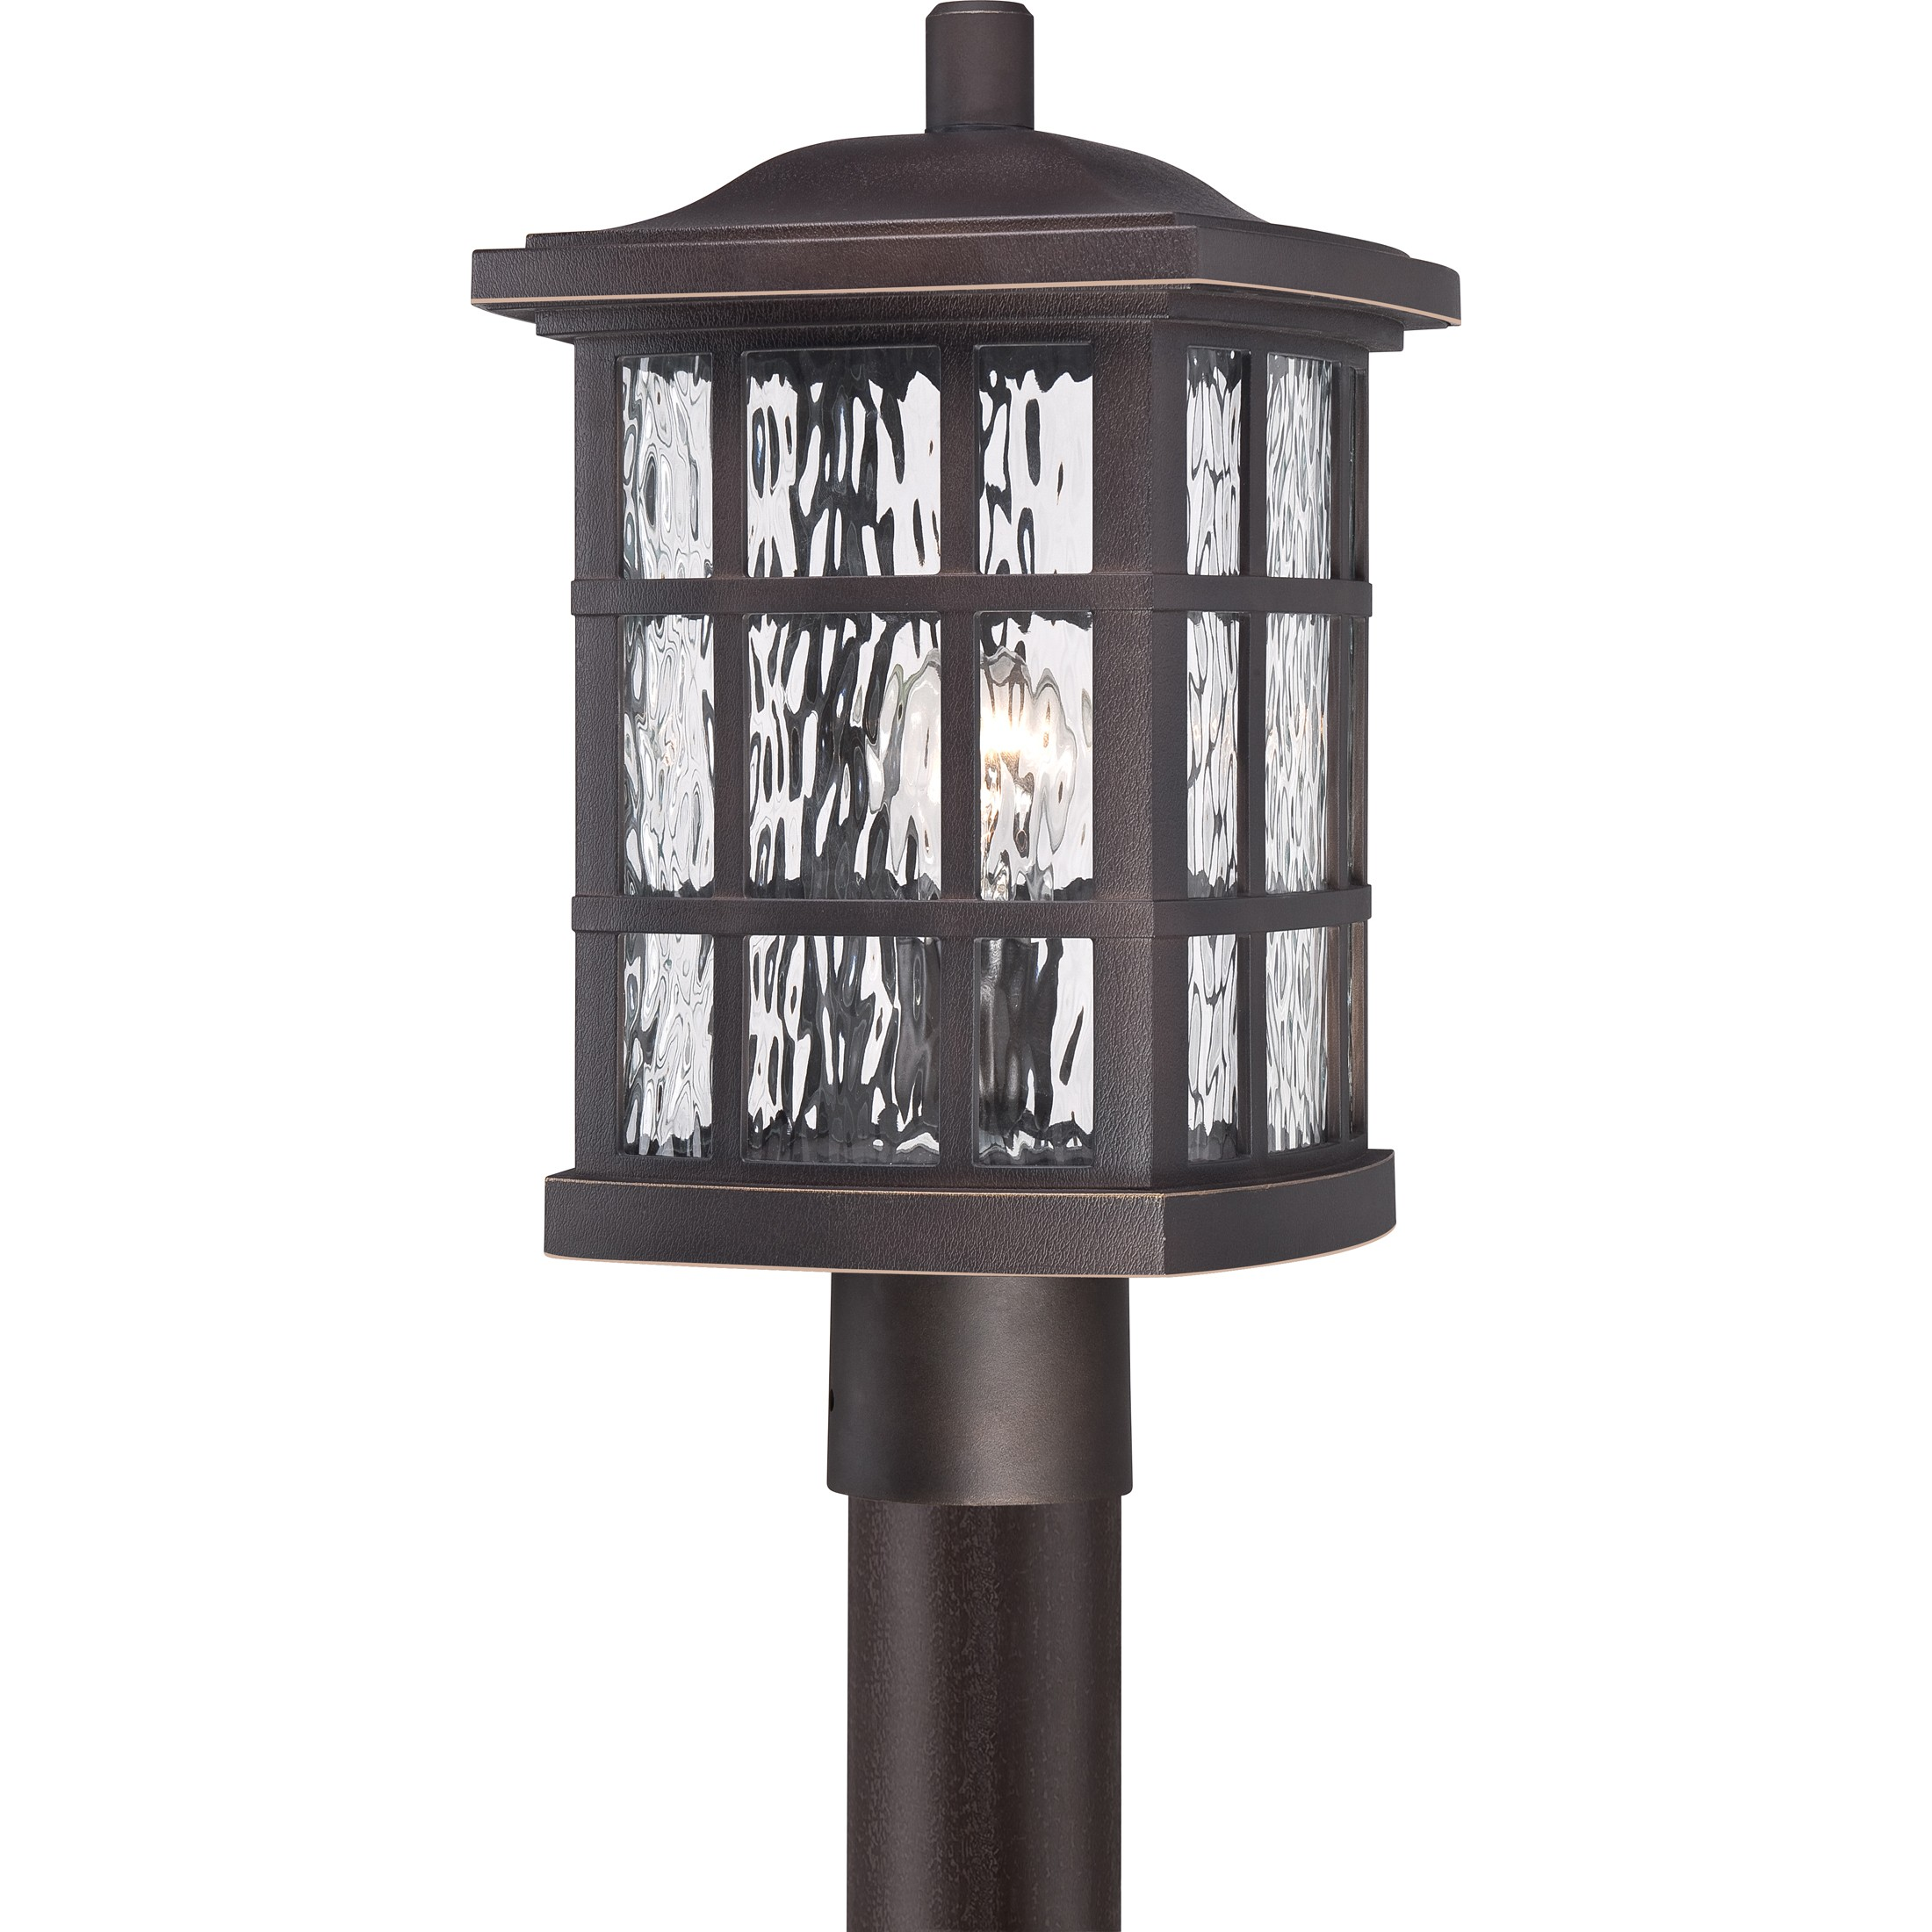 Quoizel Stonington Light Post craftsman lighting